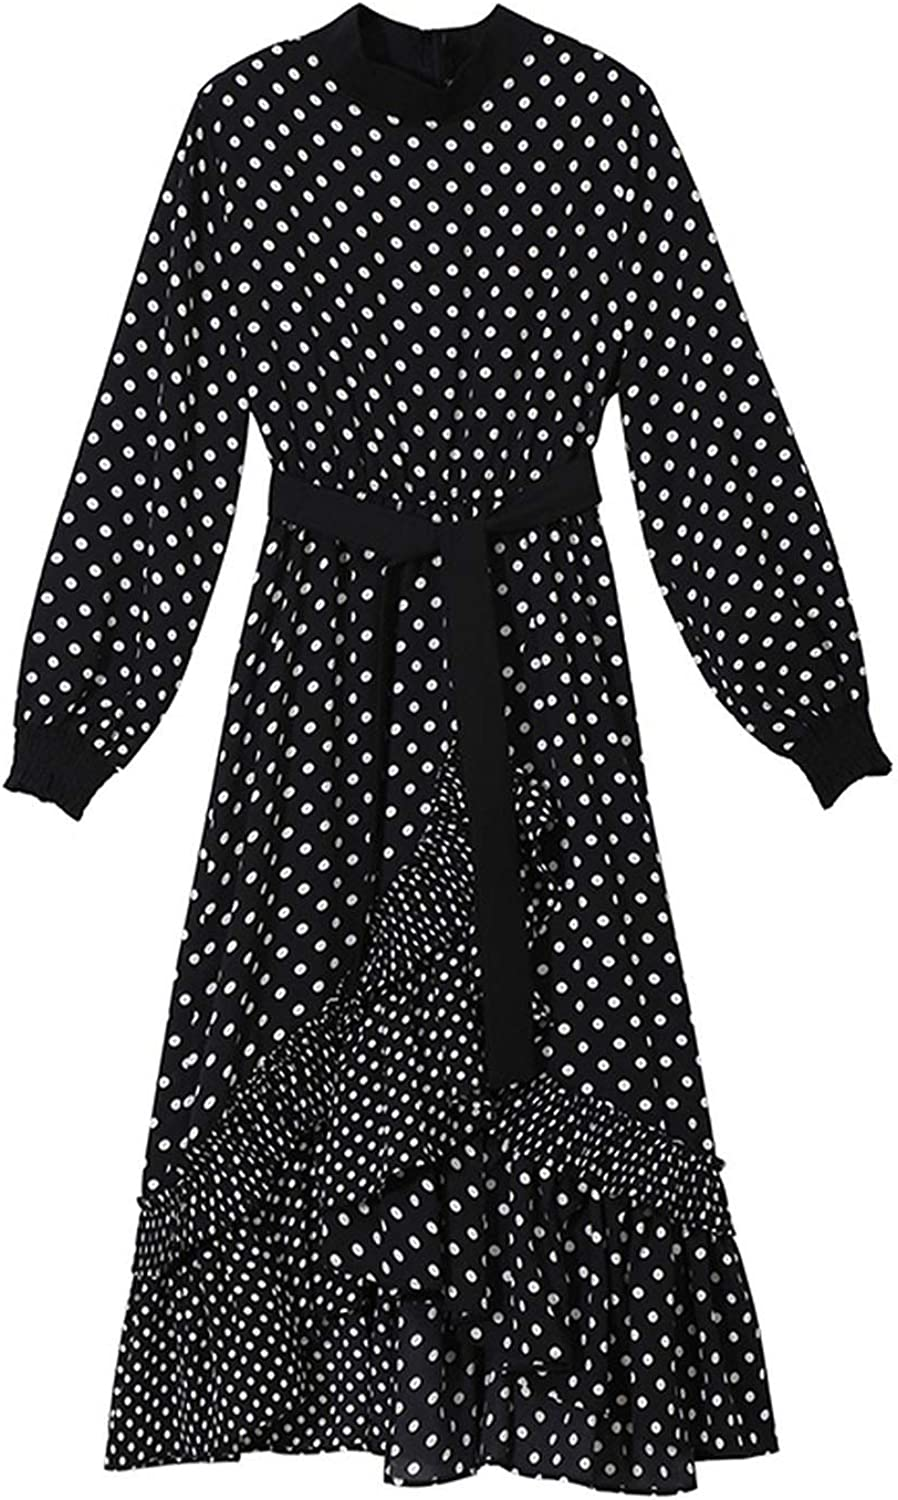 AllAboutUs Women Spring Long Black Dress Polka Dots Stand Collar Female Elegant Party Club Wear